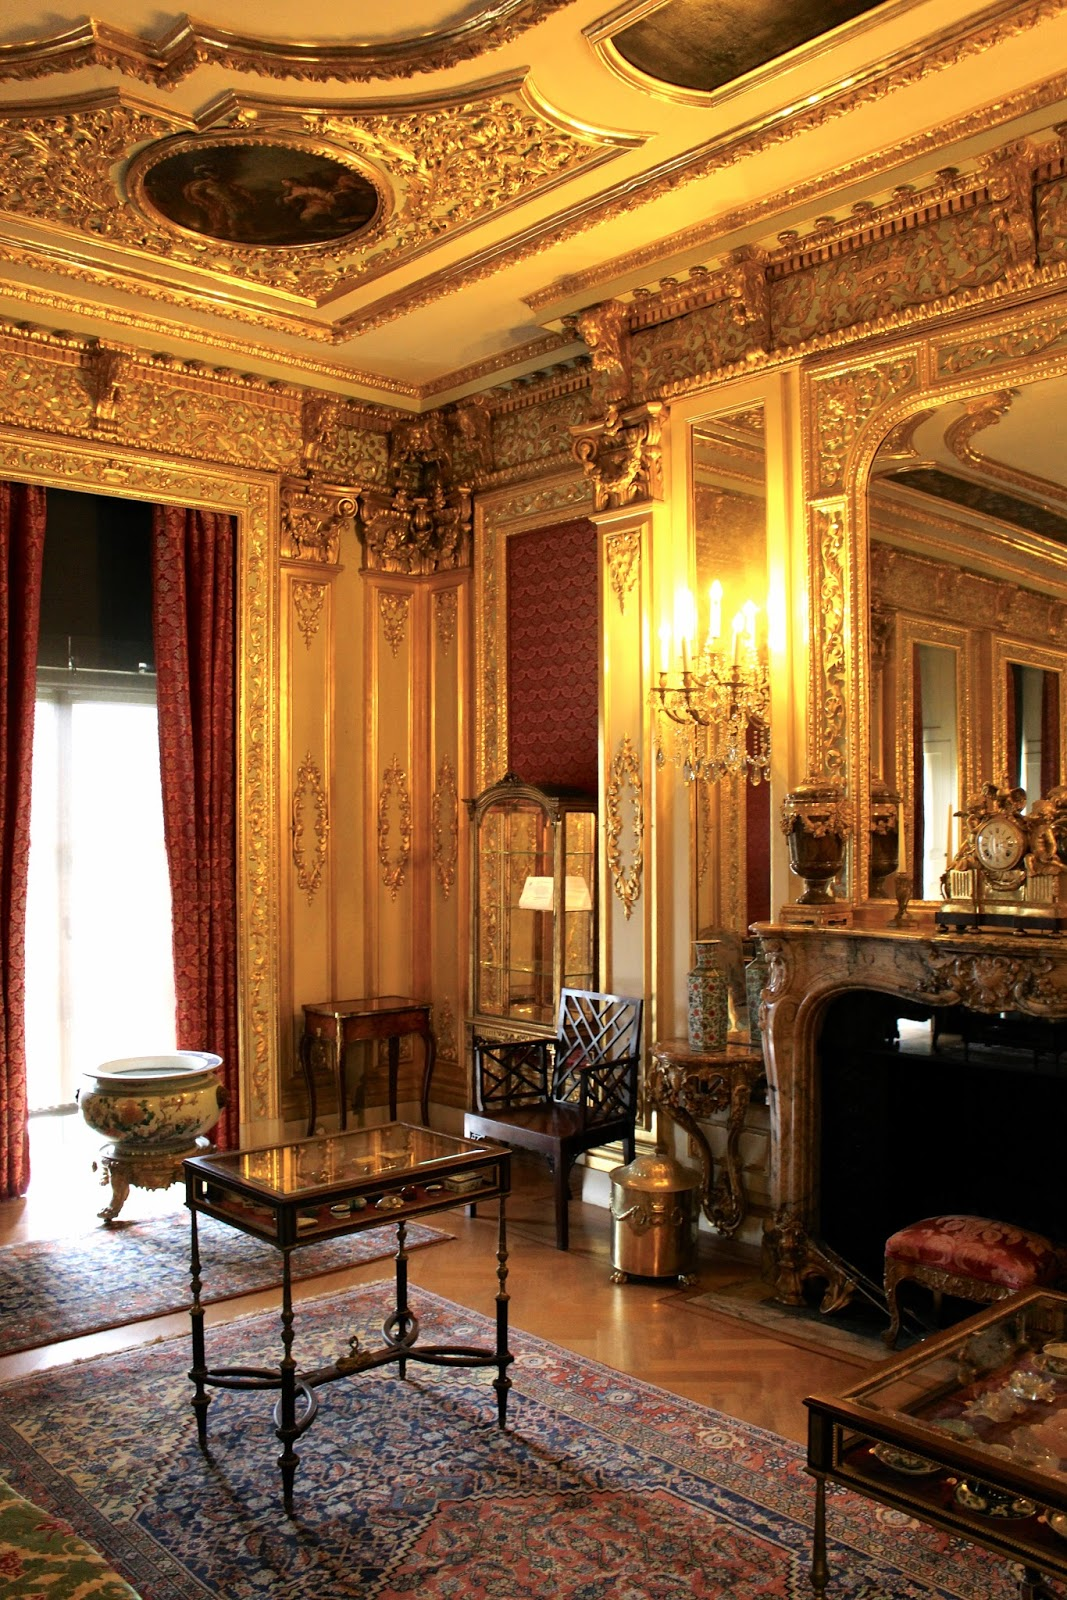 The Gold Room found at Polesden Lacey